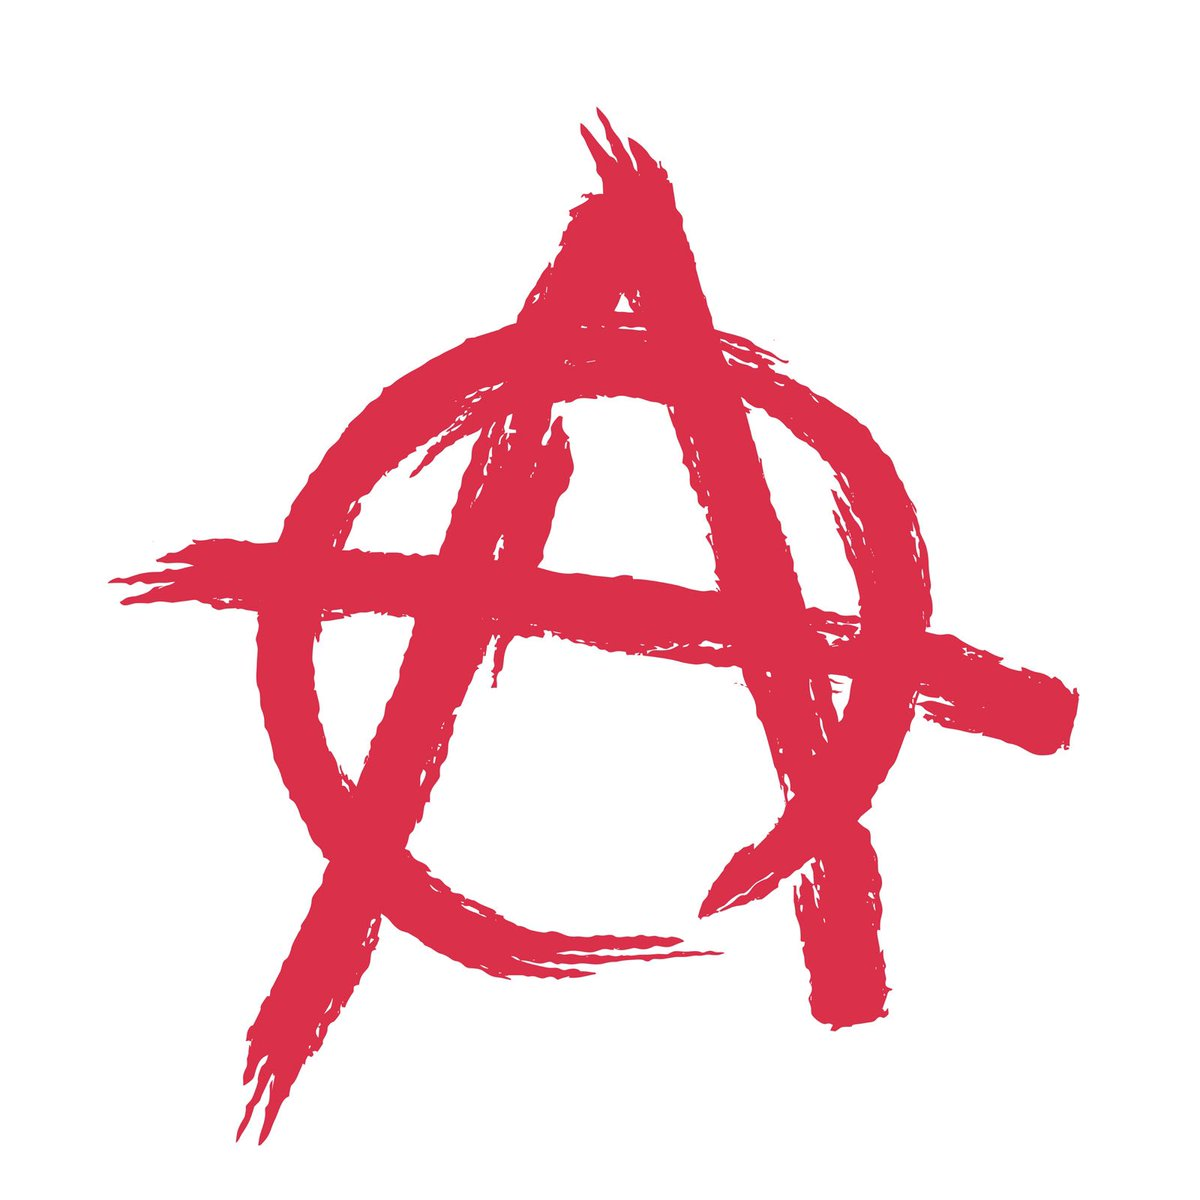 """THE MORE YOU KNOW! this symbol is how Elvis Costello fans signal to one another; the A stands for the singer's popular song """"Alison"""""""